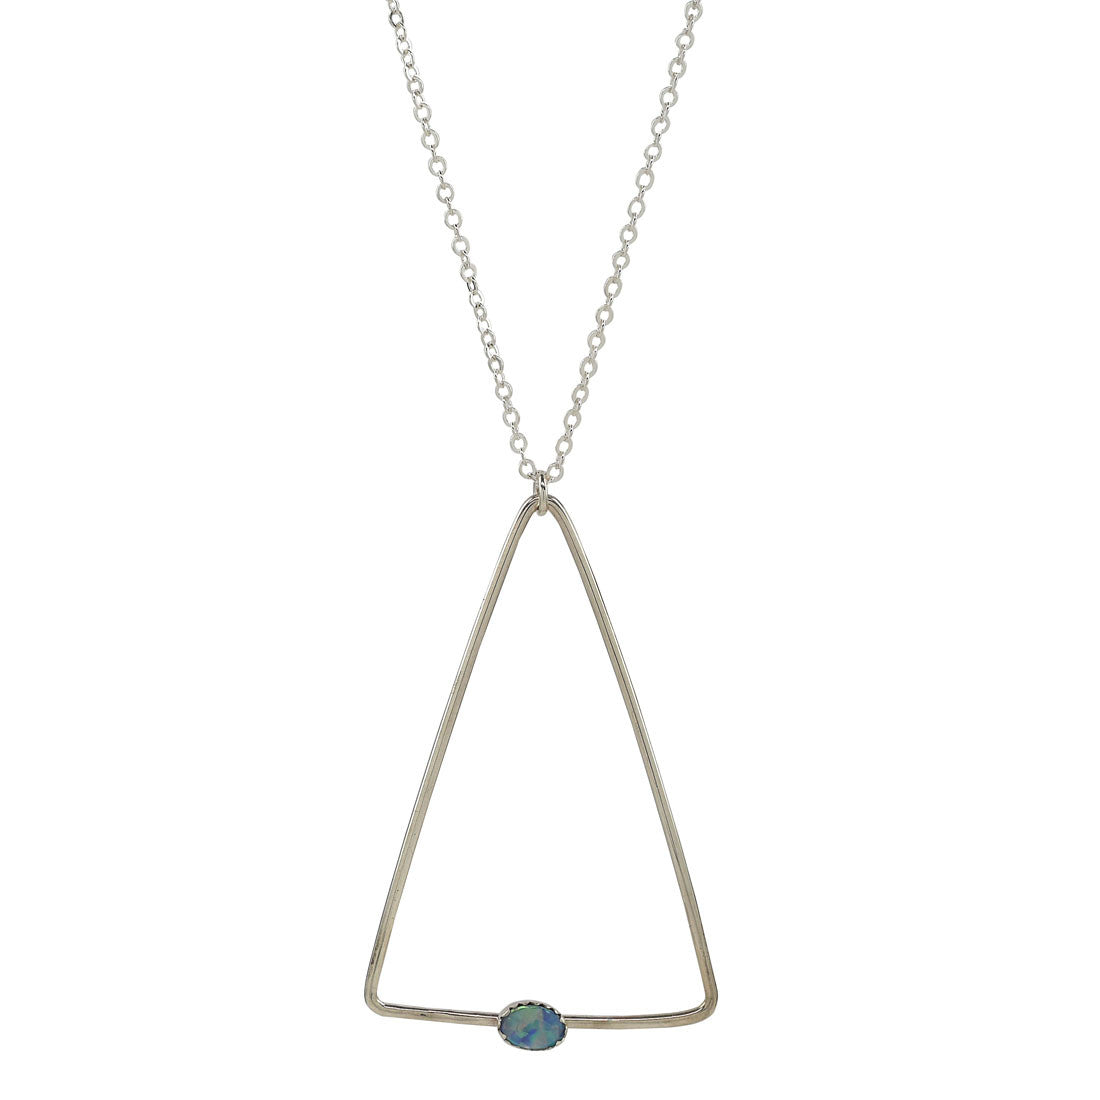 Opal Triangle Necklace - Celebrity Coachella Jewelry